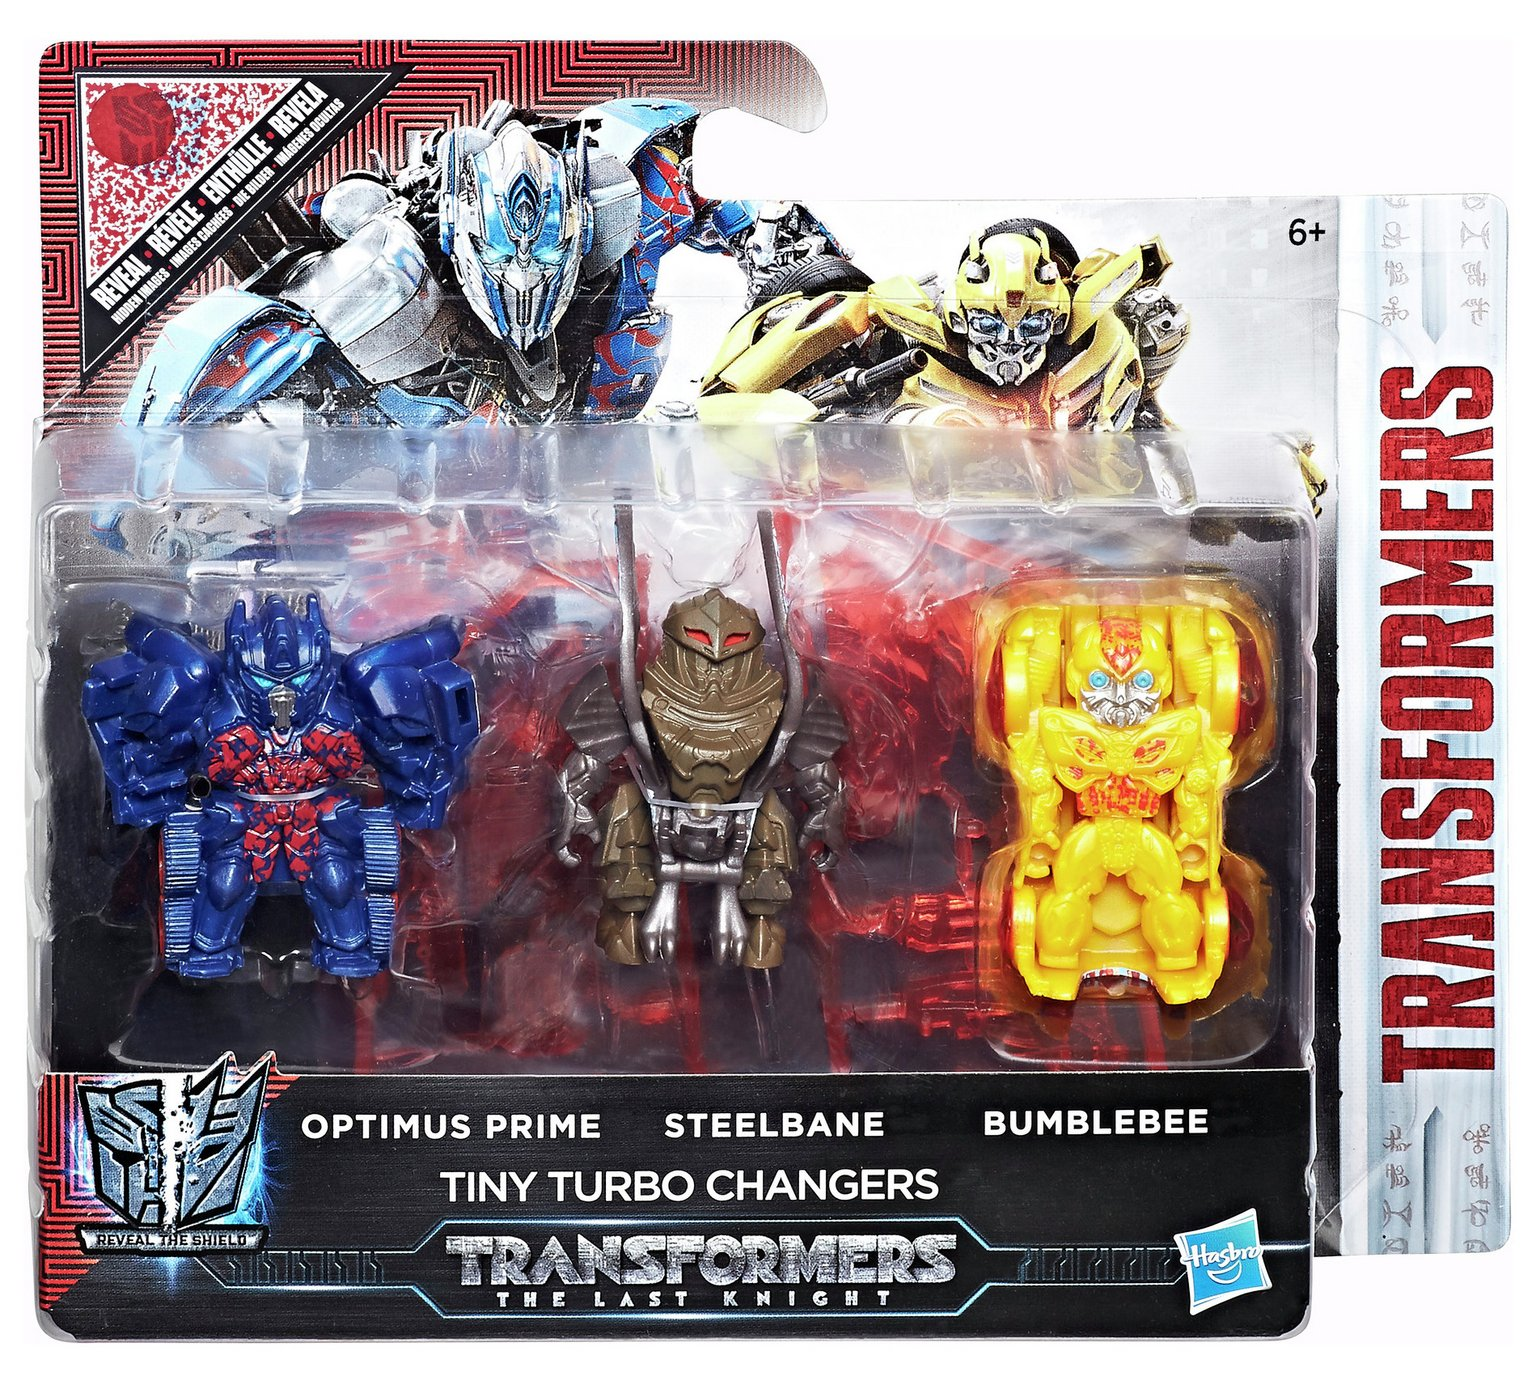 Reveal The Shield Tiny Turbo Changers Three Pack Out At US